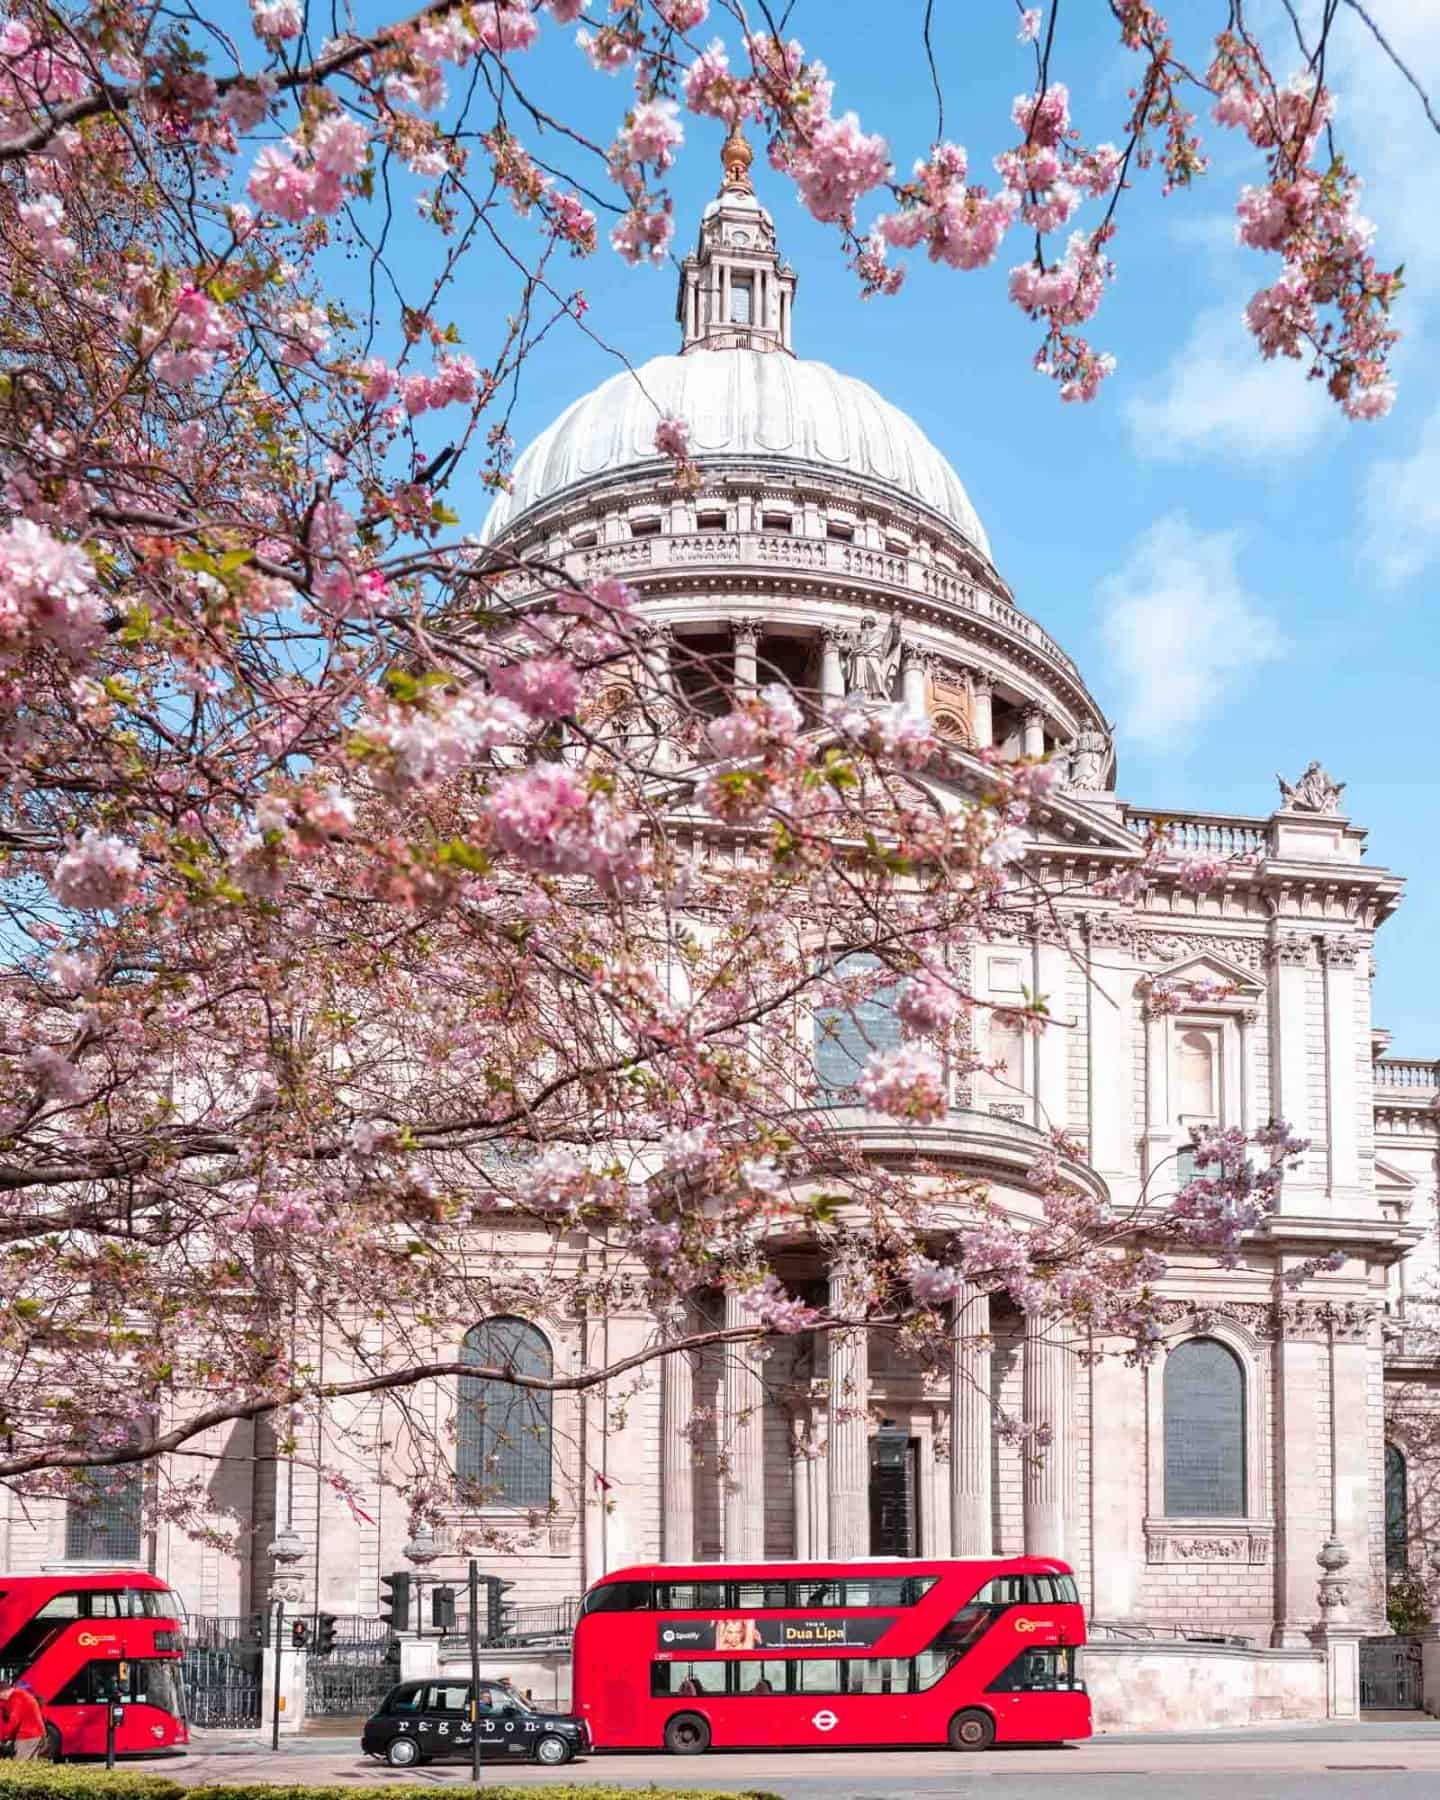 Cherry blossoms frame St Pauls with iconic London red buses and a black taxi in front